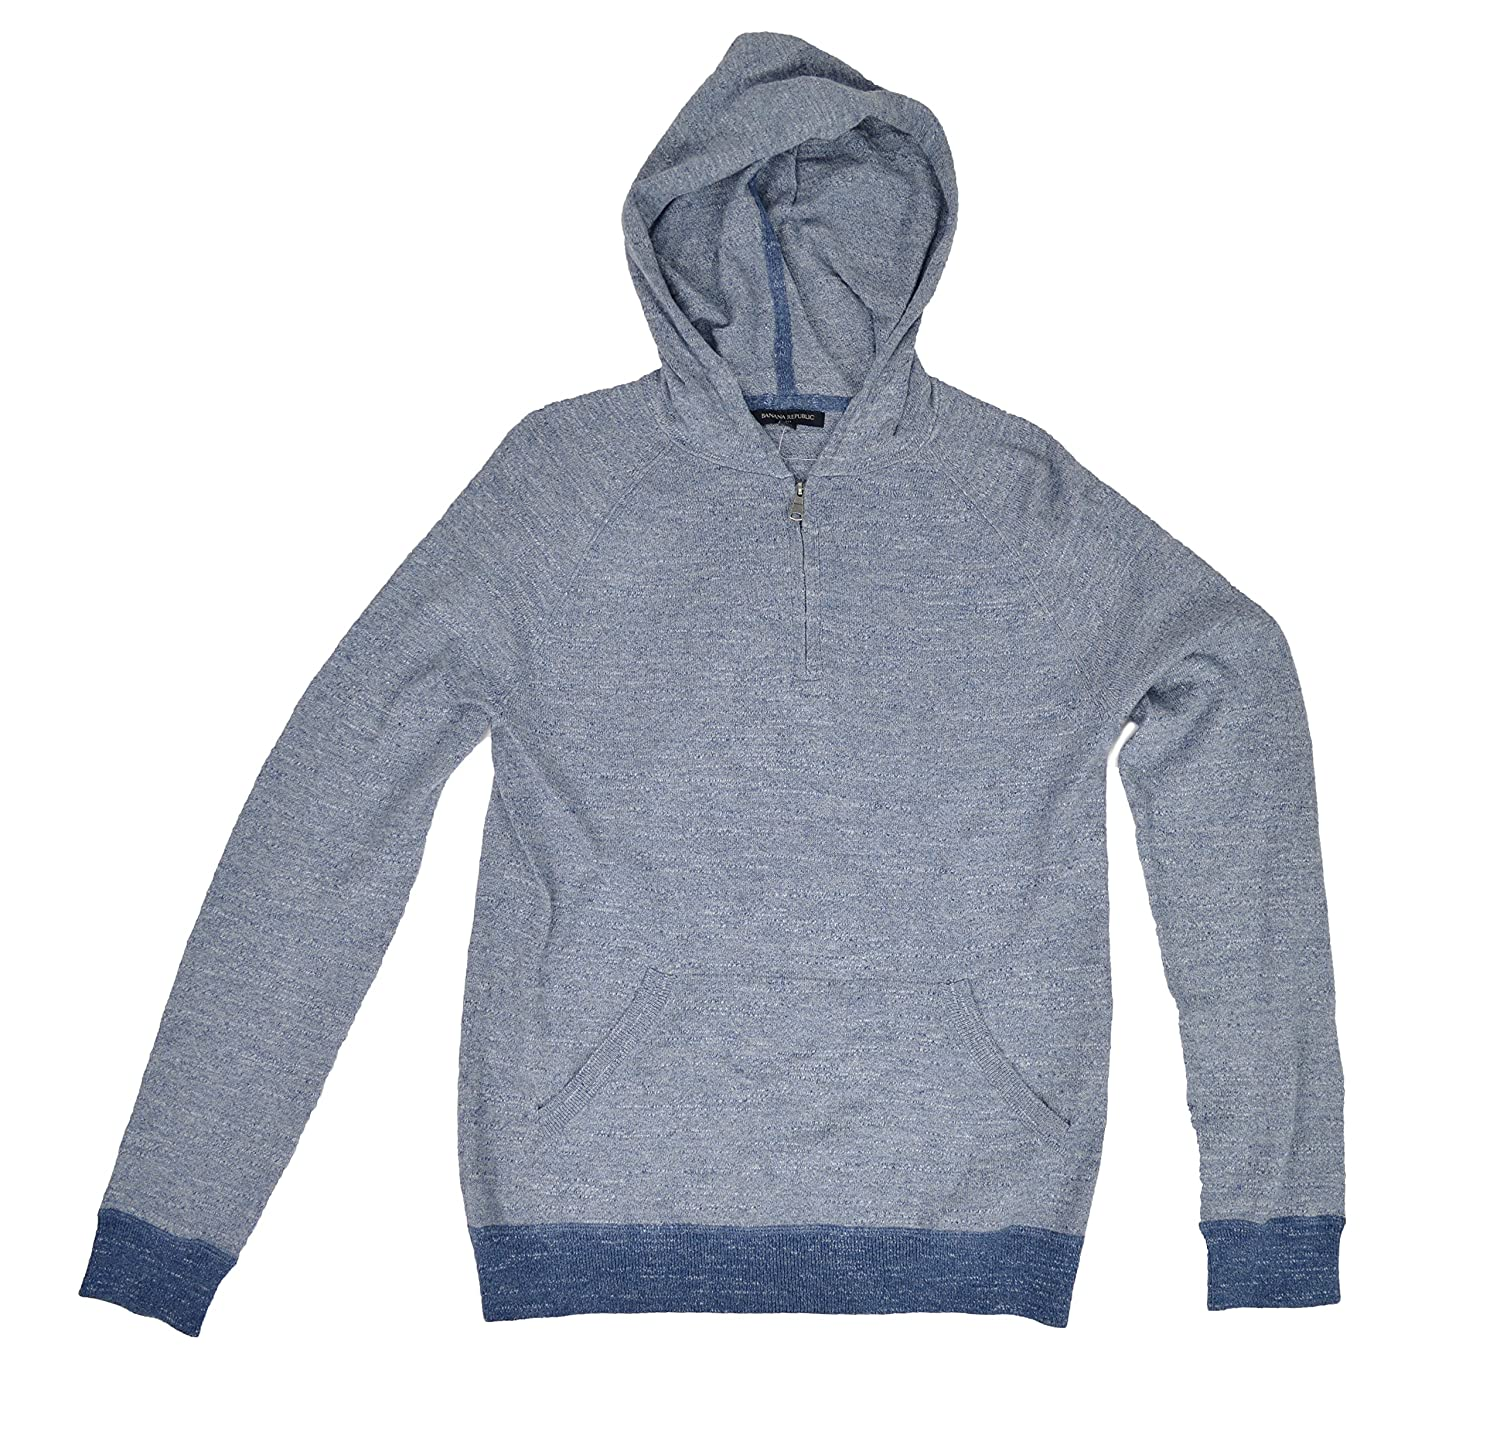 Banana Republic Men's Half Zip Hooded Sweater Gray 80%OFF - www ...